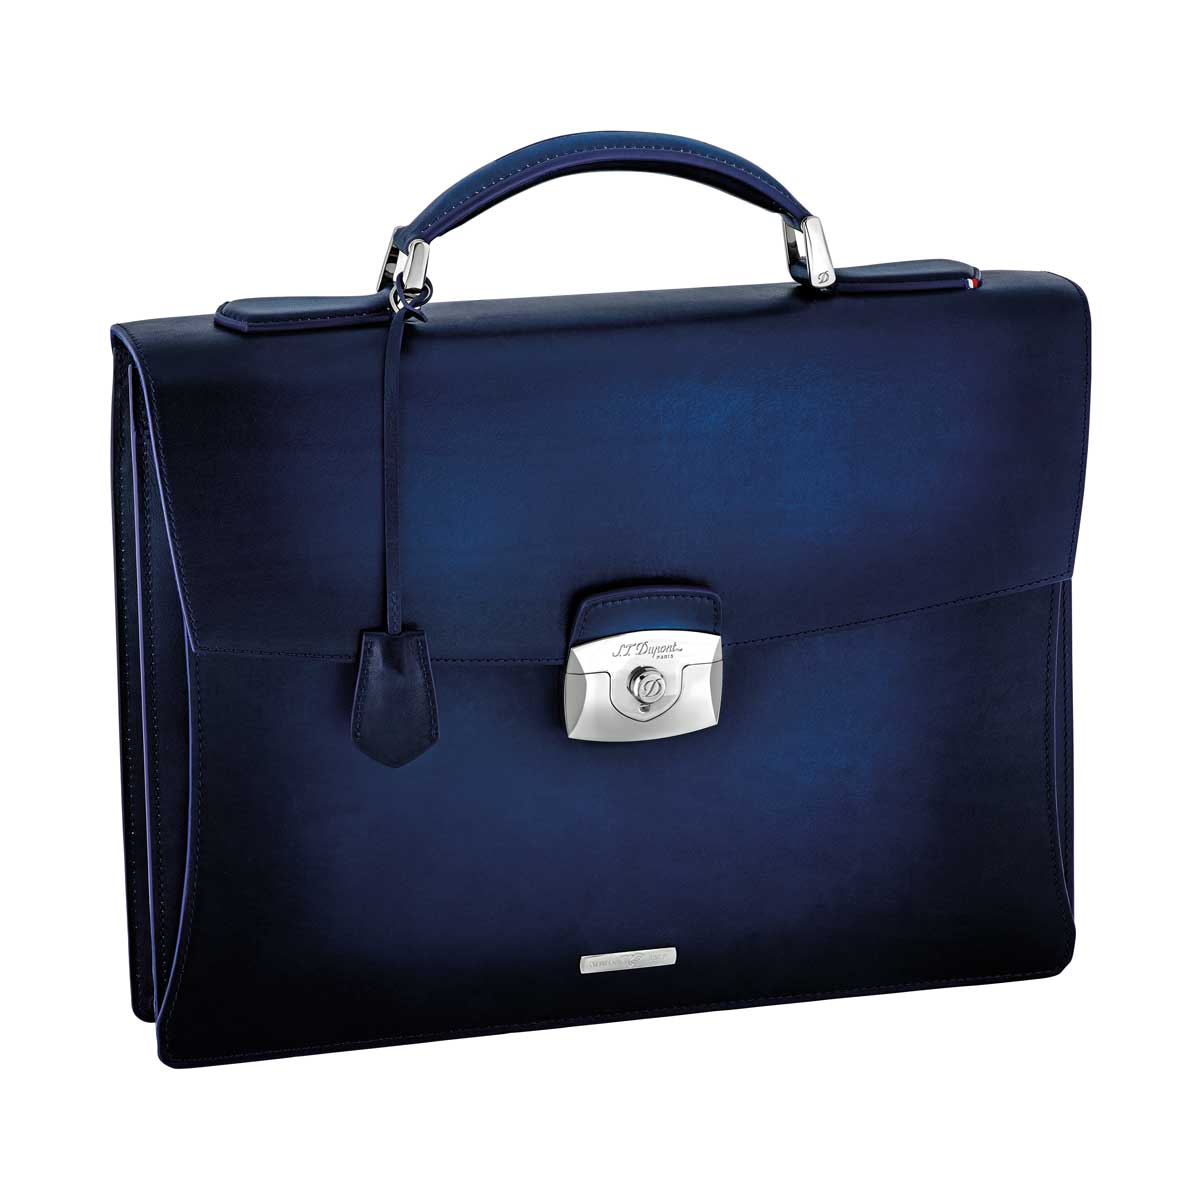 ST Dupont Atelier Midnight Blue Leather Briefcase - Single Gusset